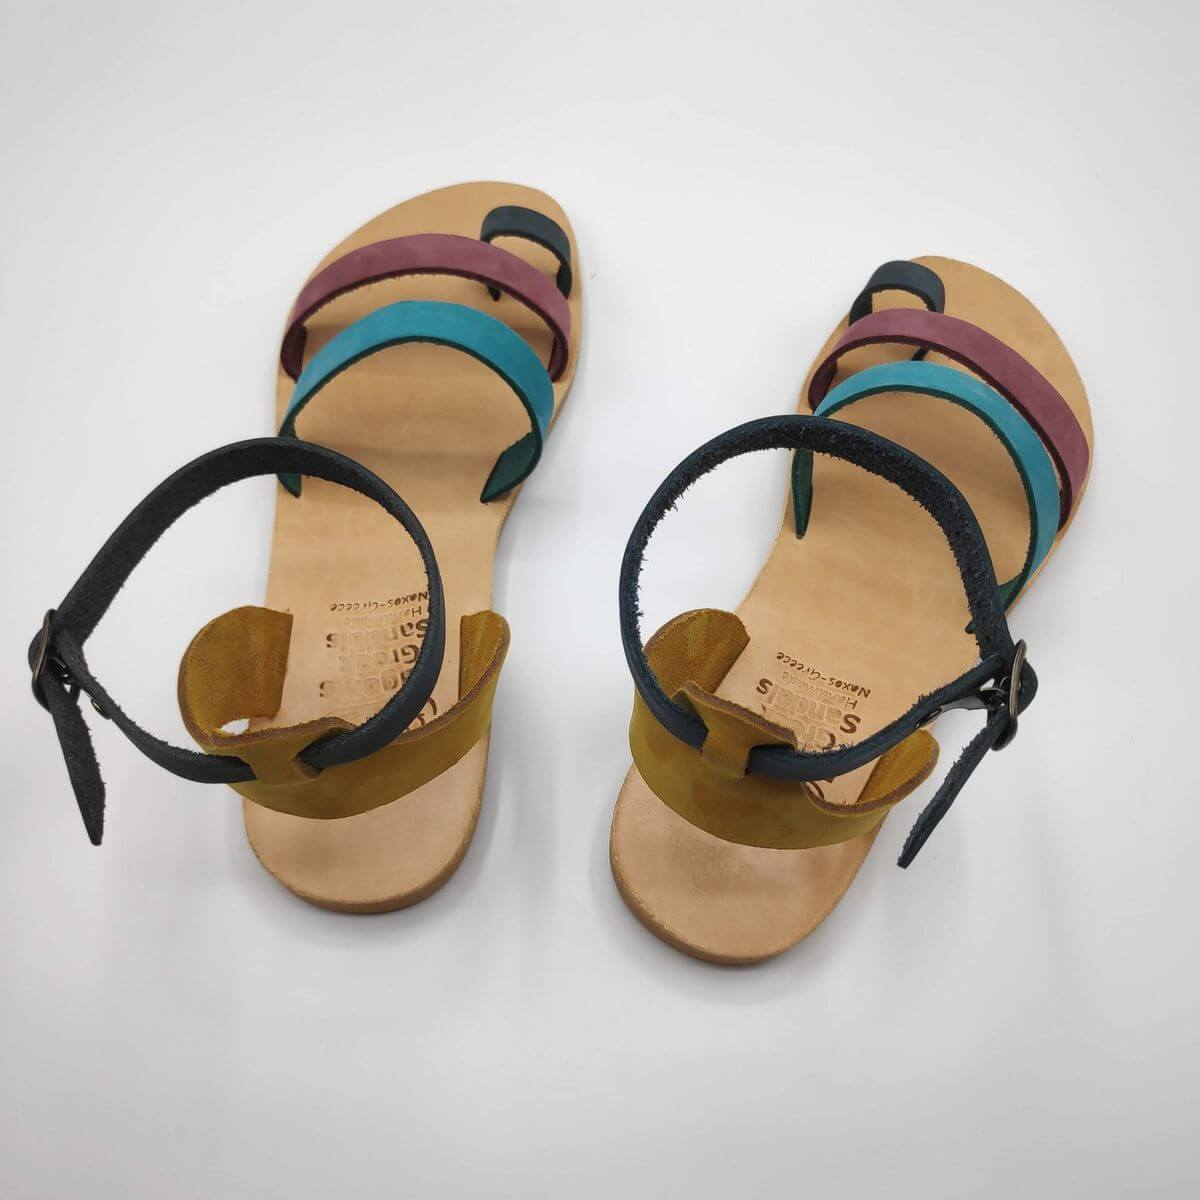 multi-colour nubuck leather dressy sandals with two straps, toe ring and high ankle strap, back view